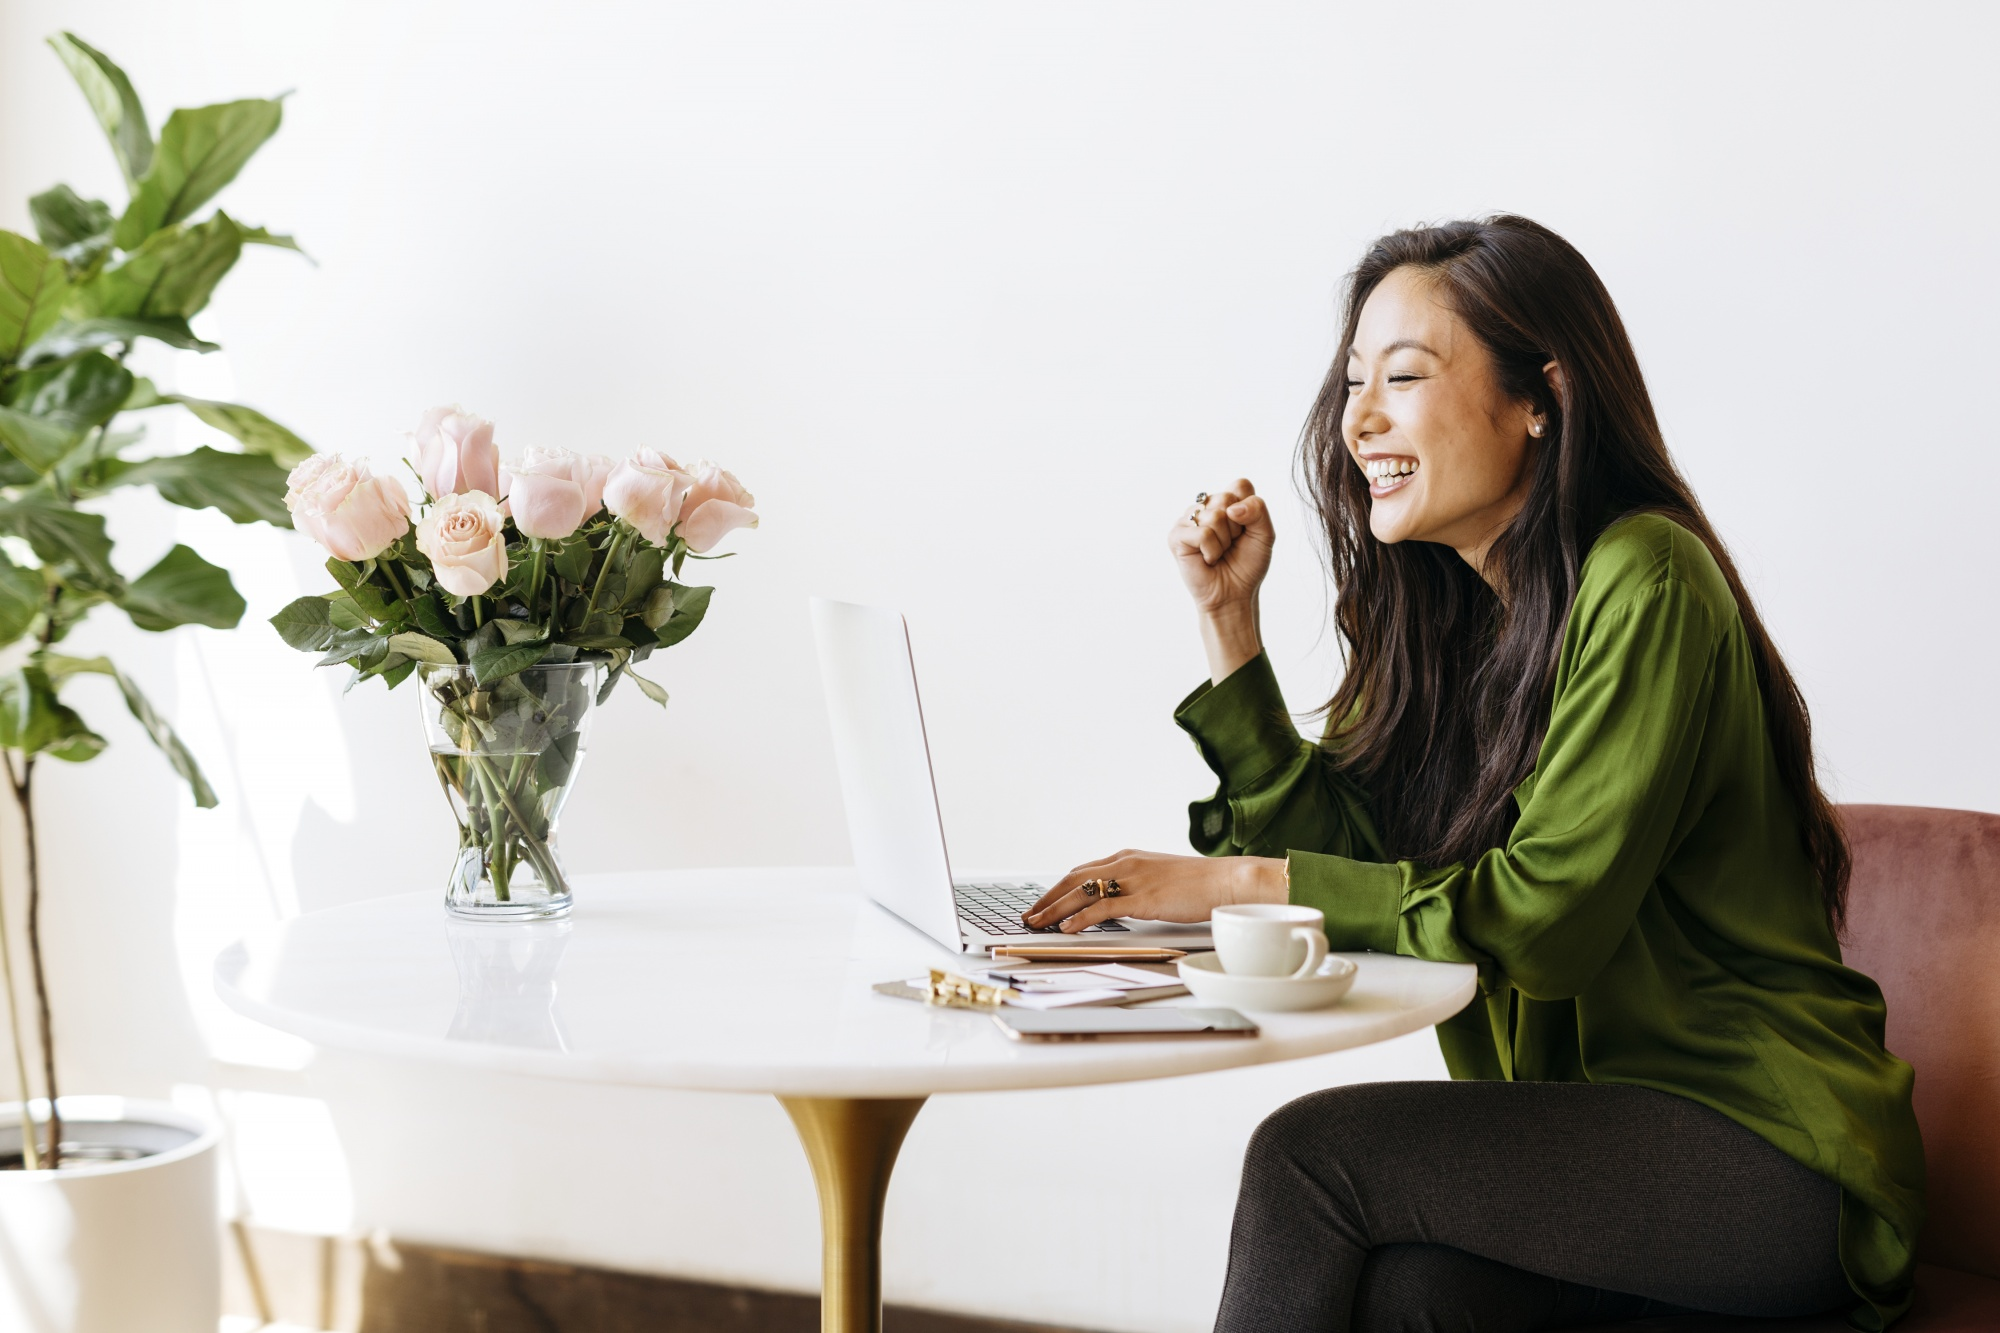 dating profile after 40, Asian woman smiling happy while writing on laptop